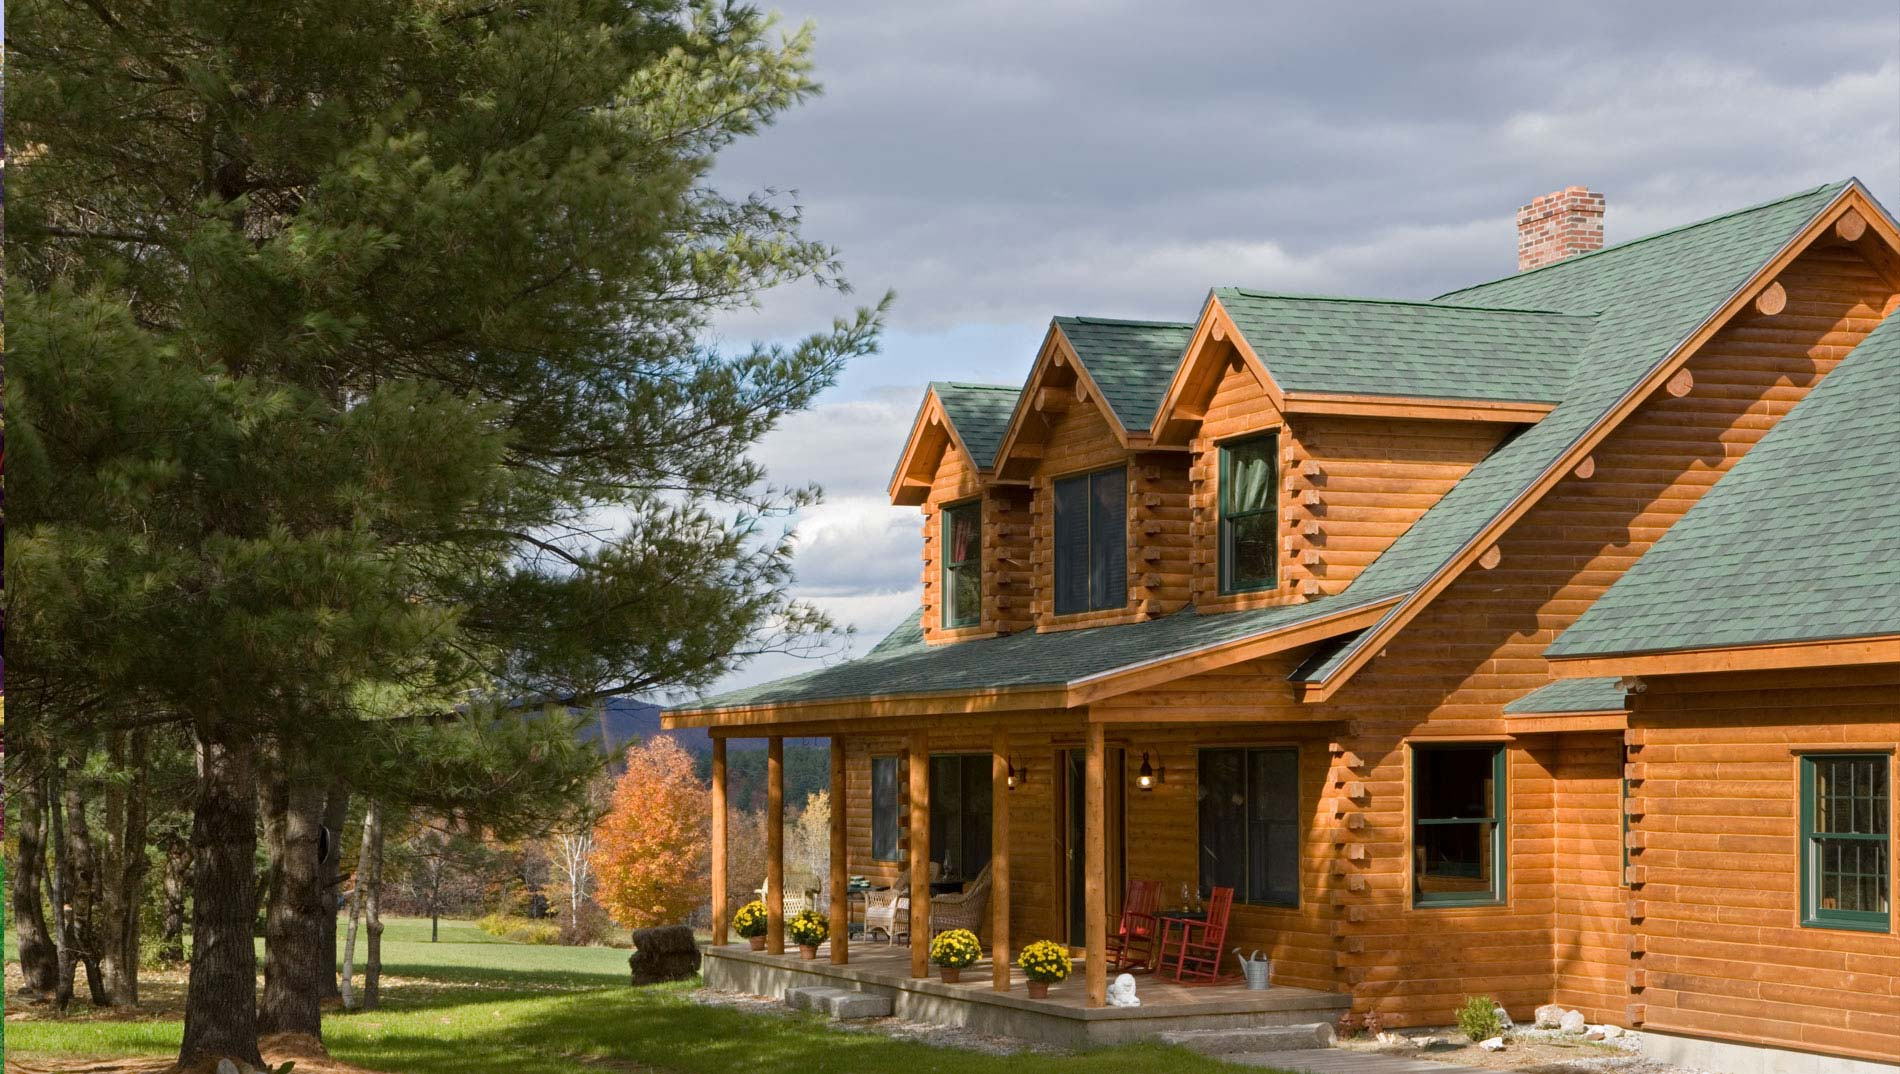 <p>A Better Log Home For Your Investment</p>